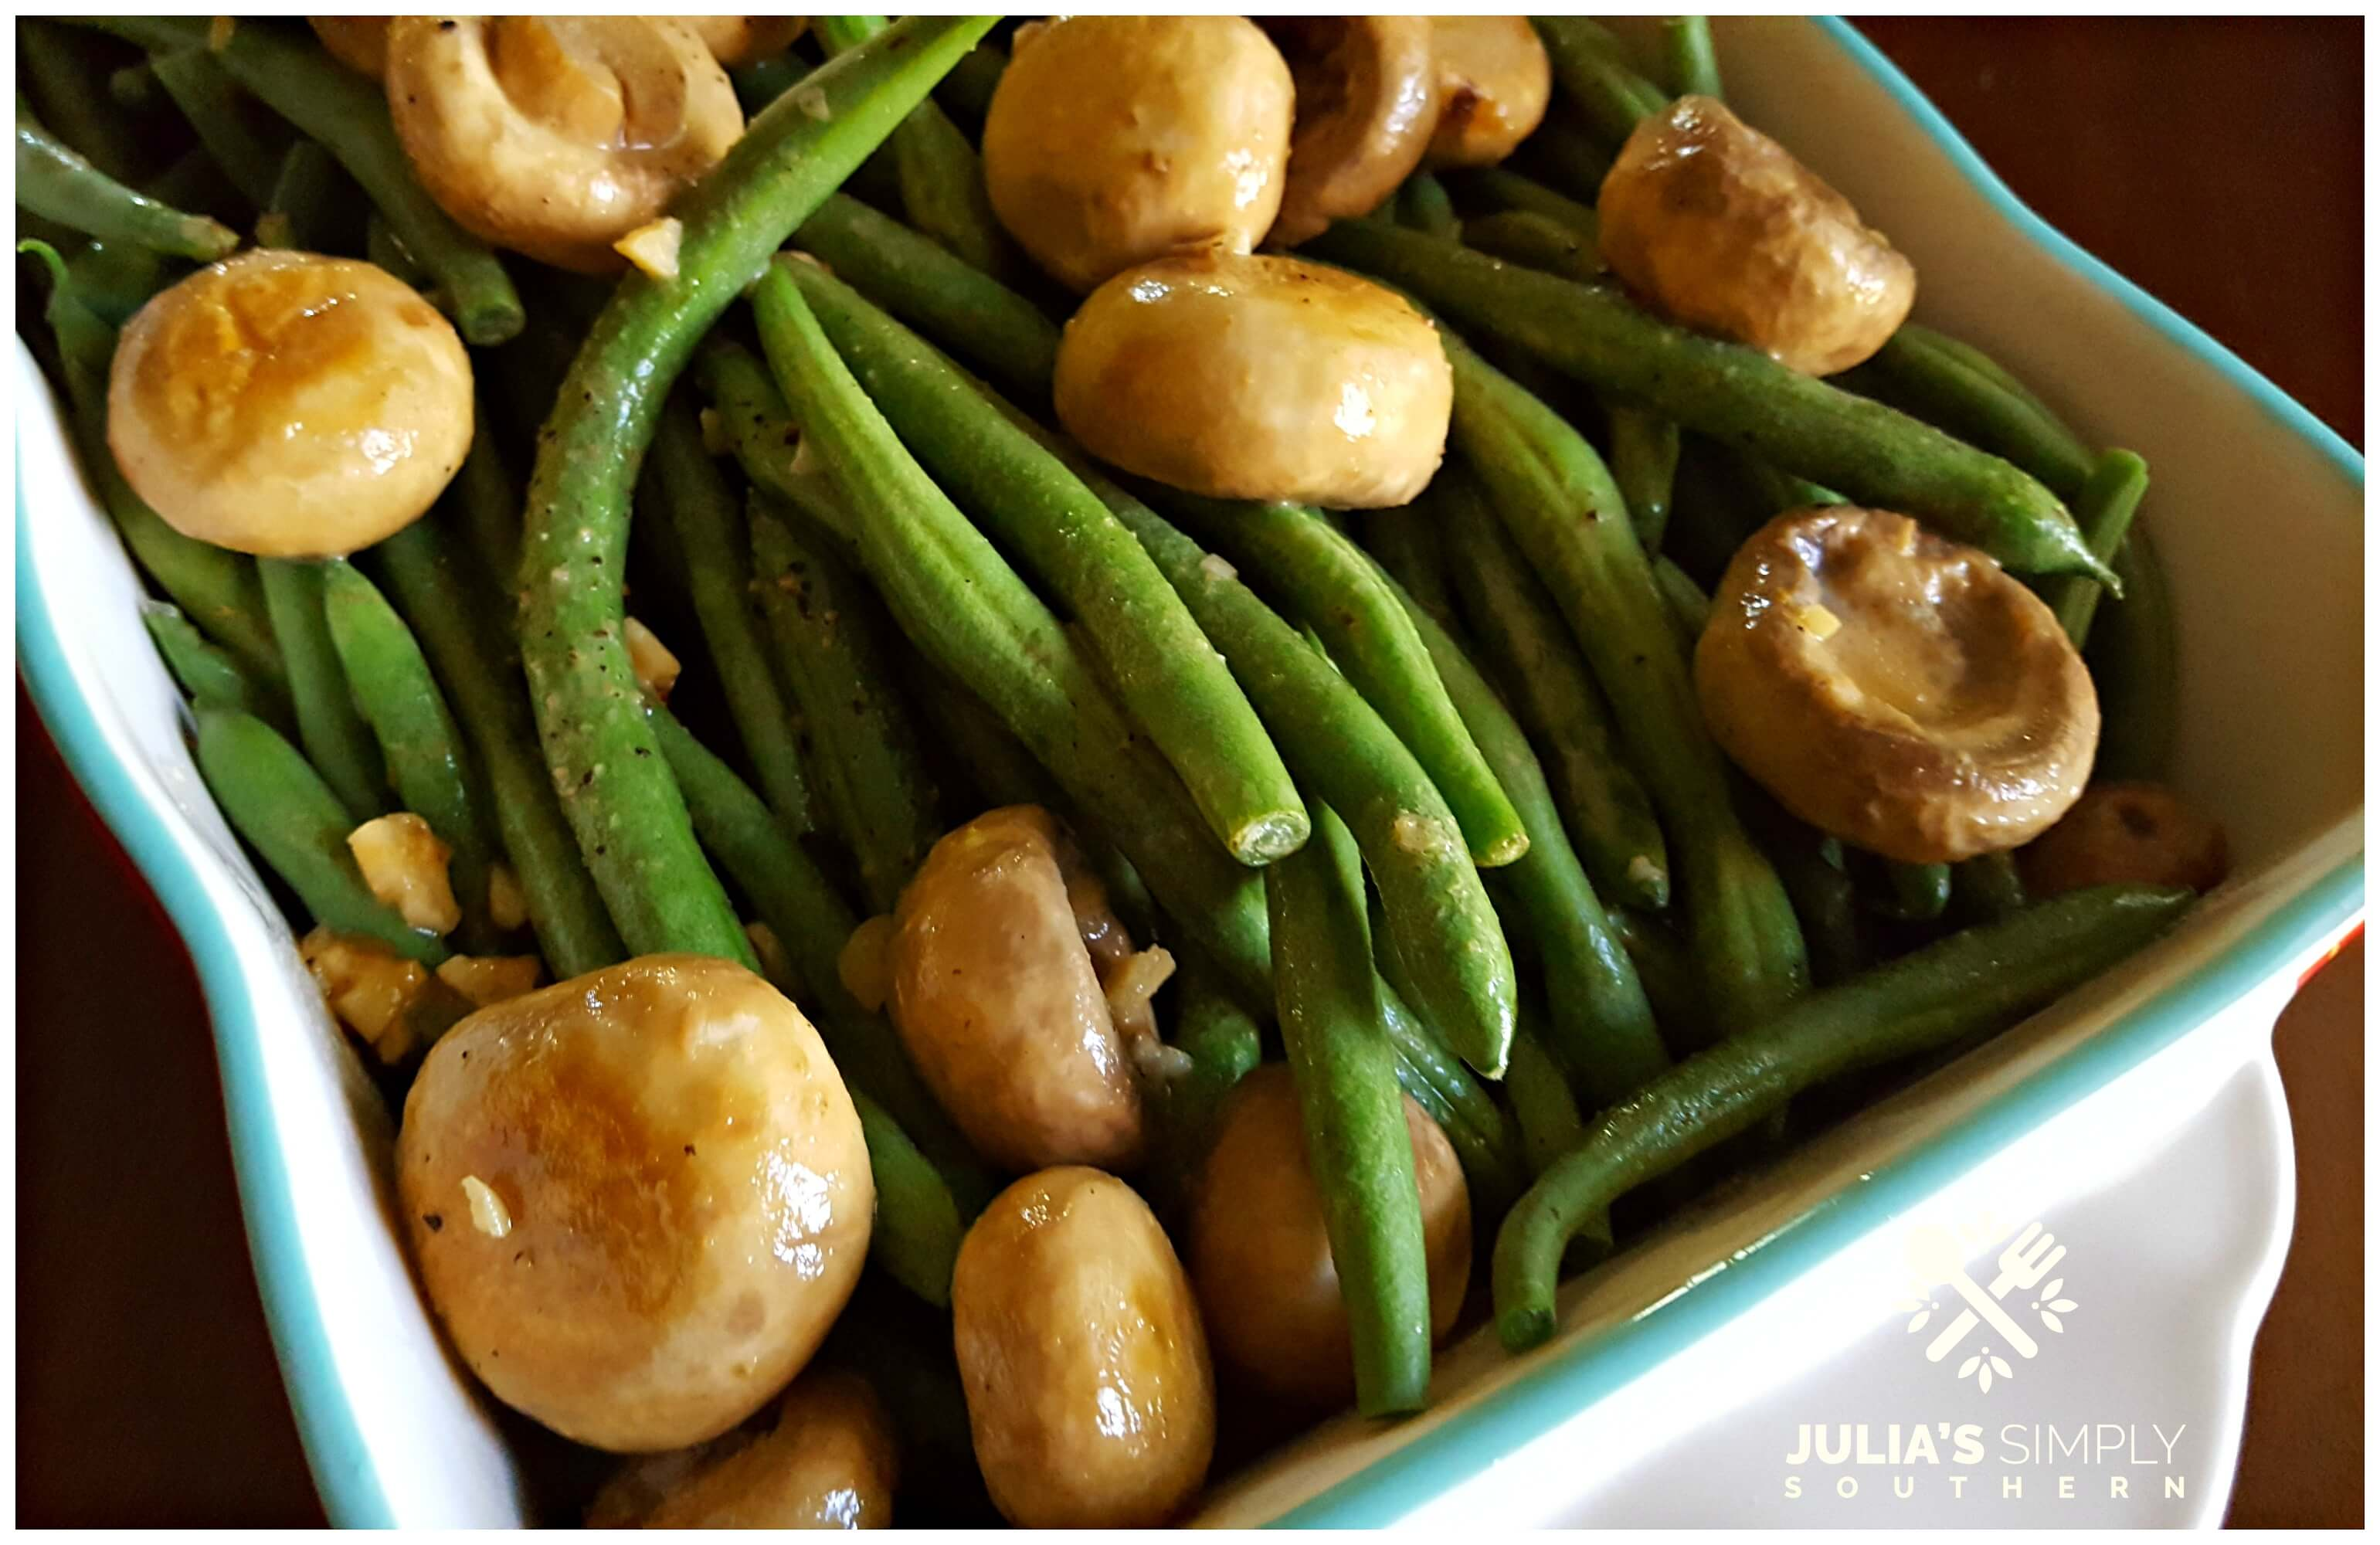 Green Beans with Mushrooms in a delicious sauce